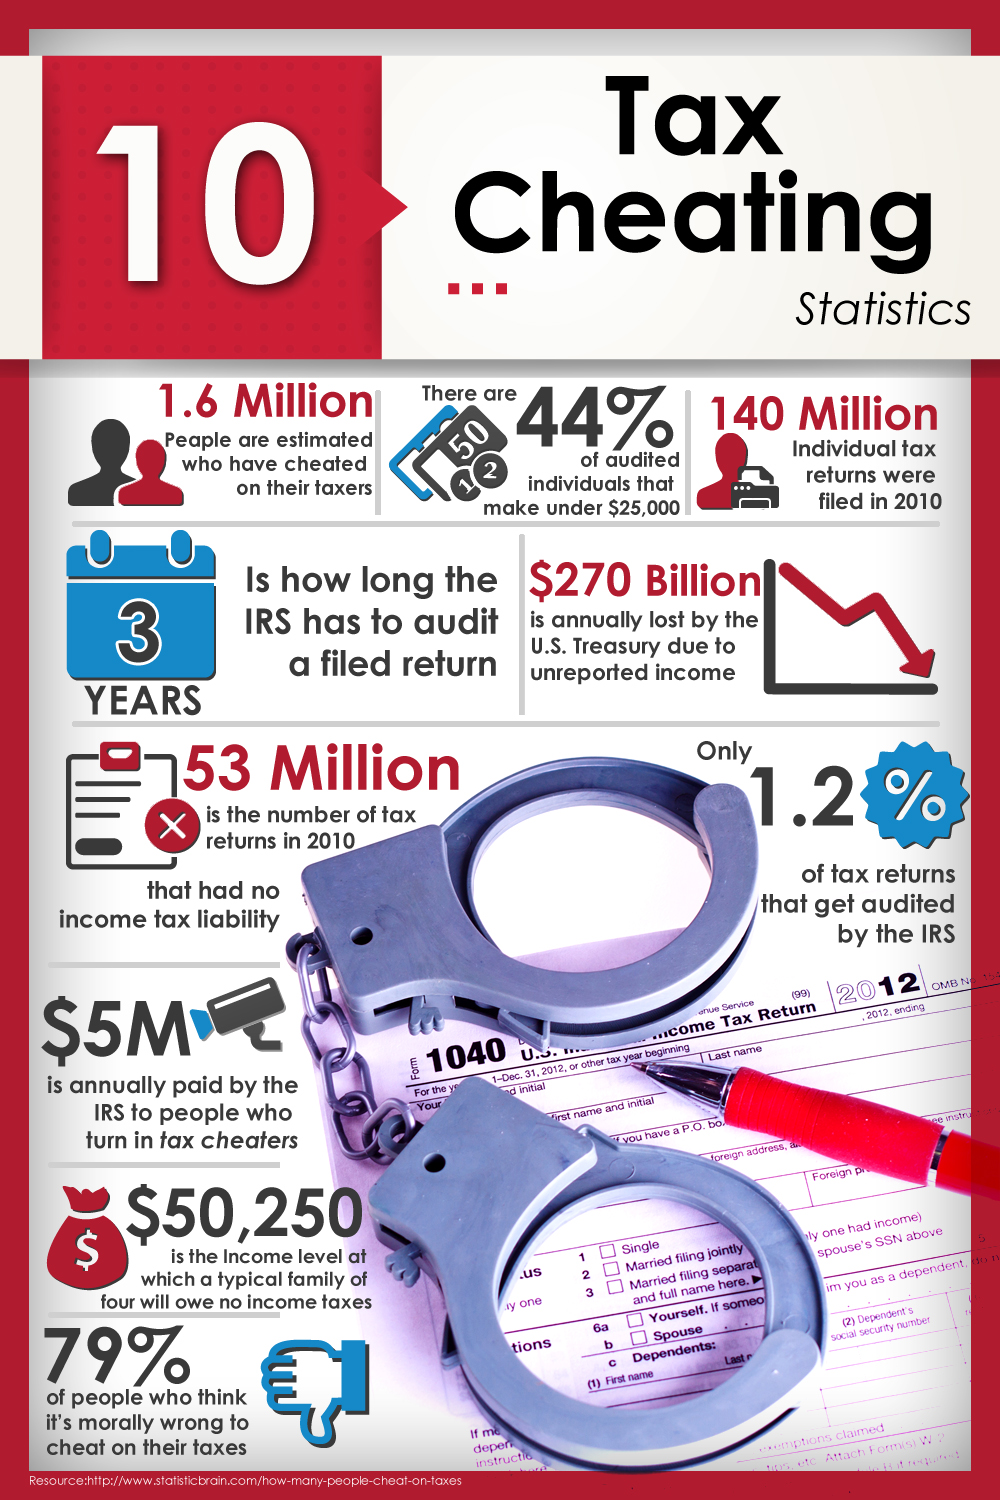 Tax Cheating Infographic